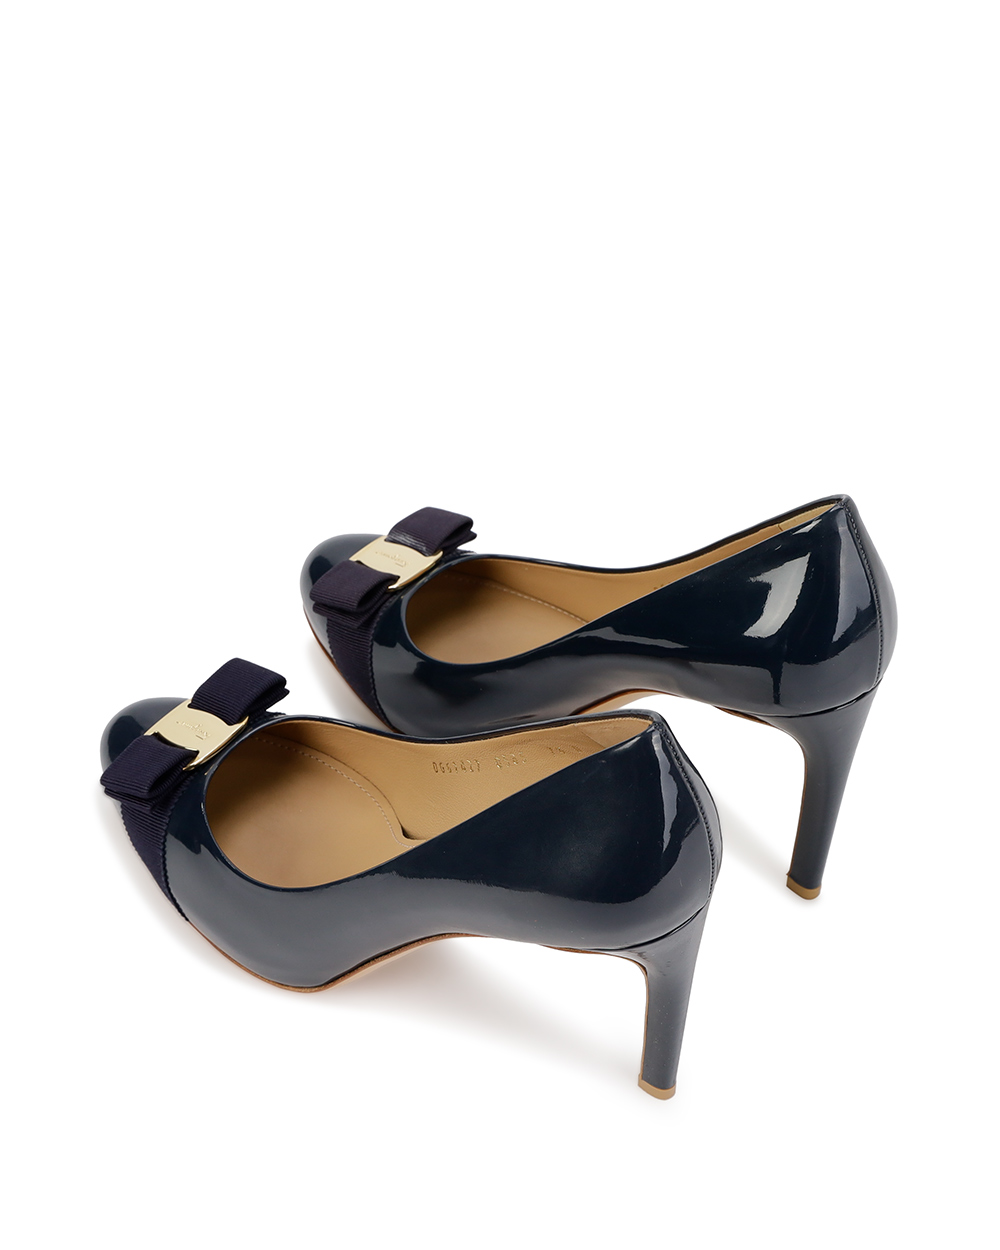 Patent Leather High Heels With Bow 2